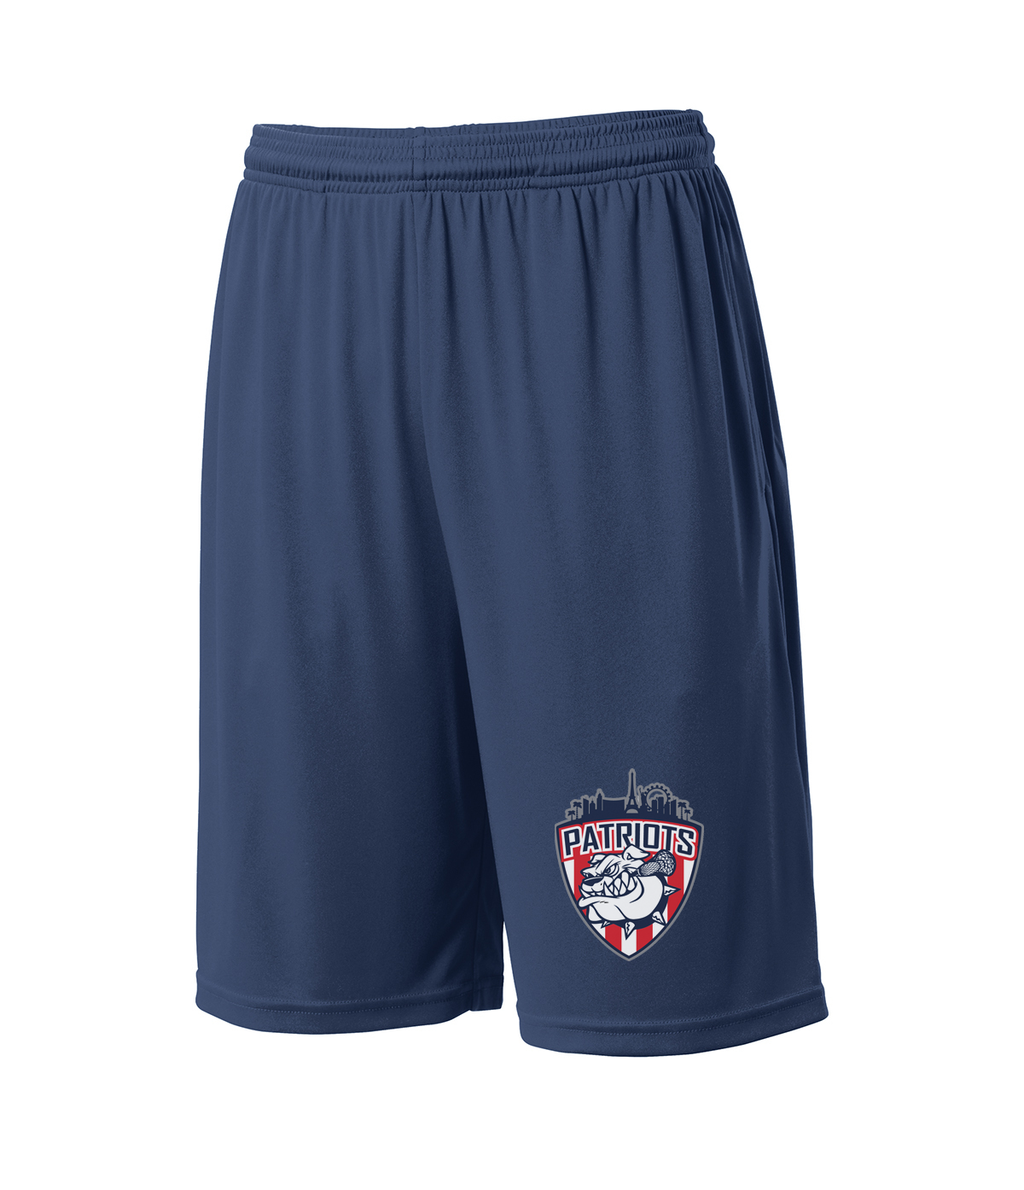 Las Vegas Patriots Shorts